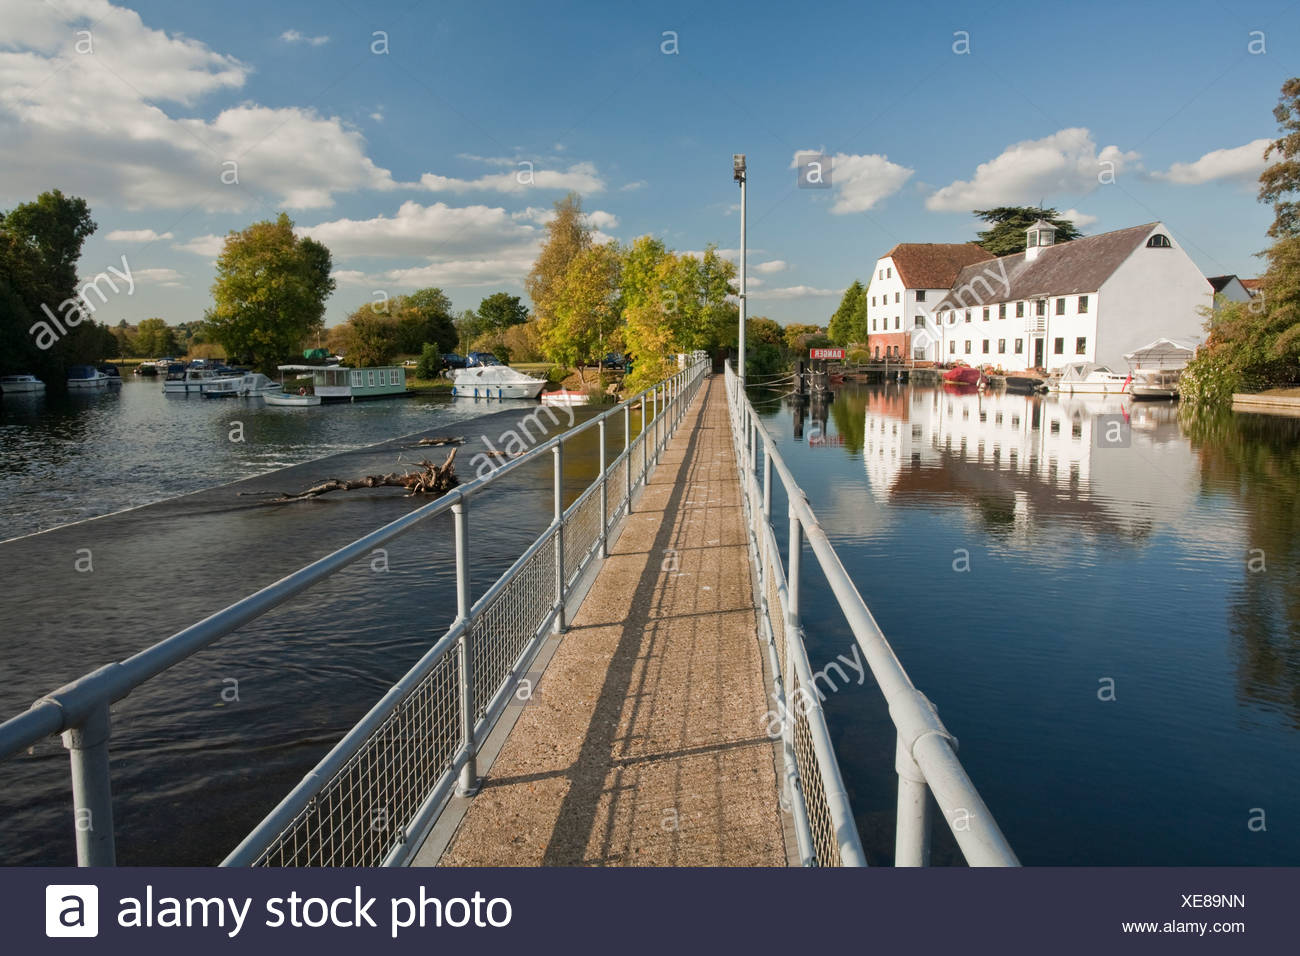 Hambleden Weir on the River Thames near Henley, Oxfordshire, Uk - Stock Image